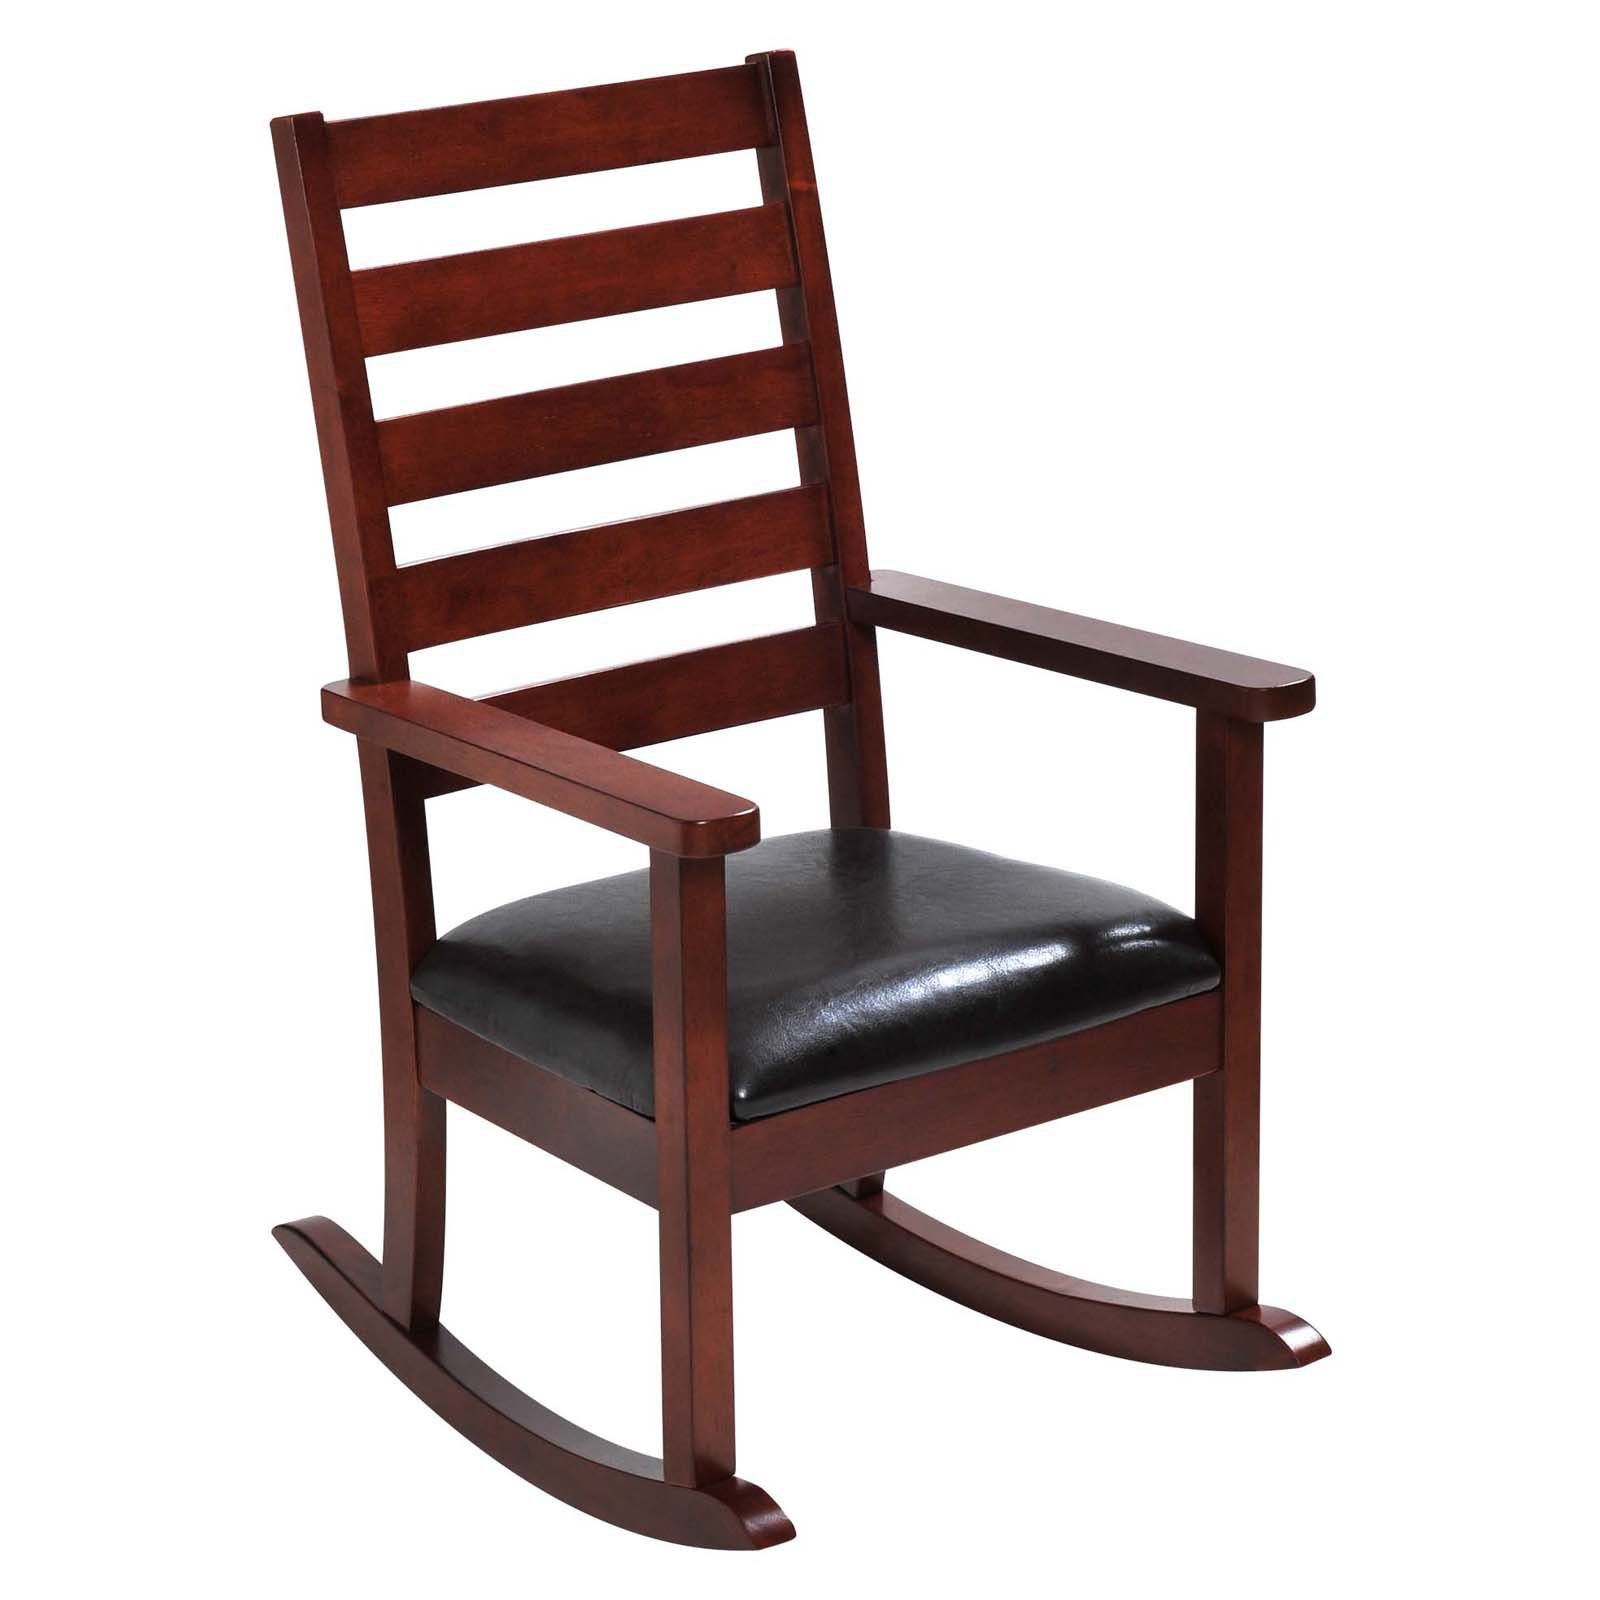 Mission Style Ladder Back Childrens Rocking Chair with Upholstered Seat (Cherry Color)